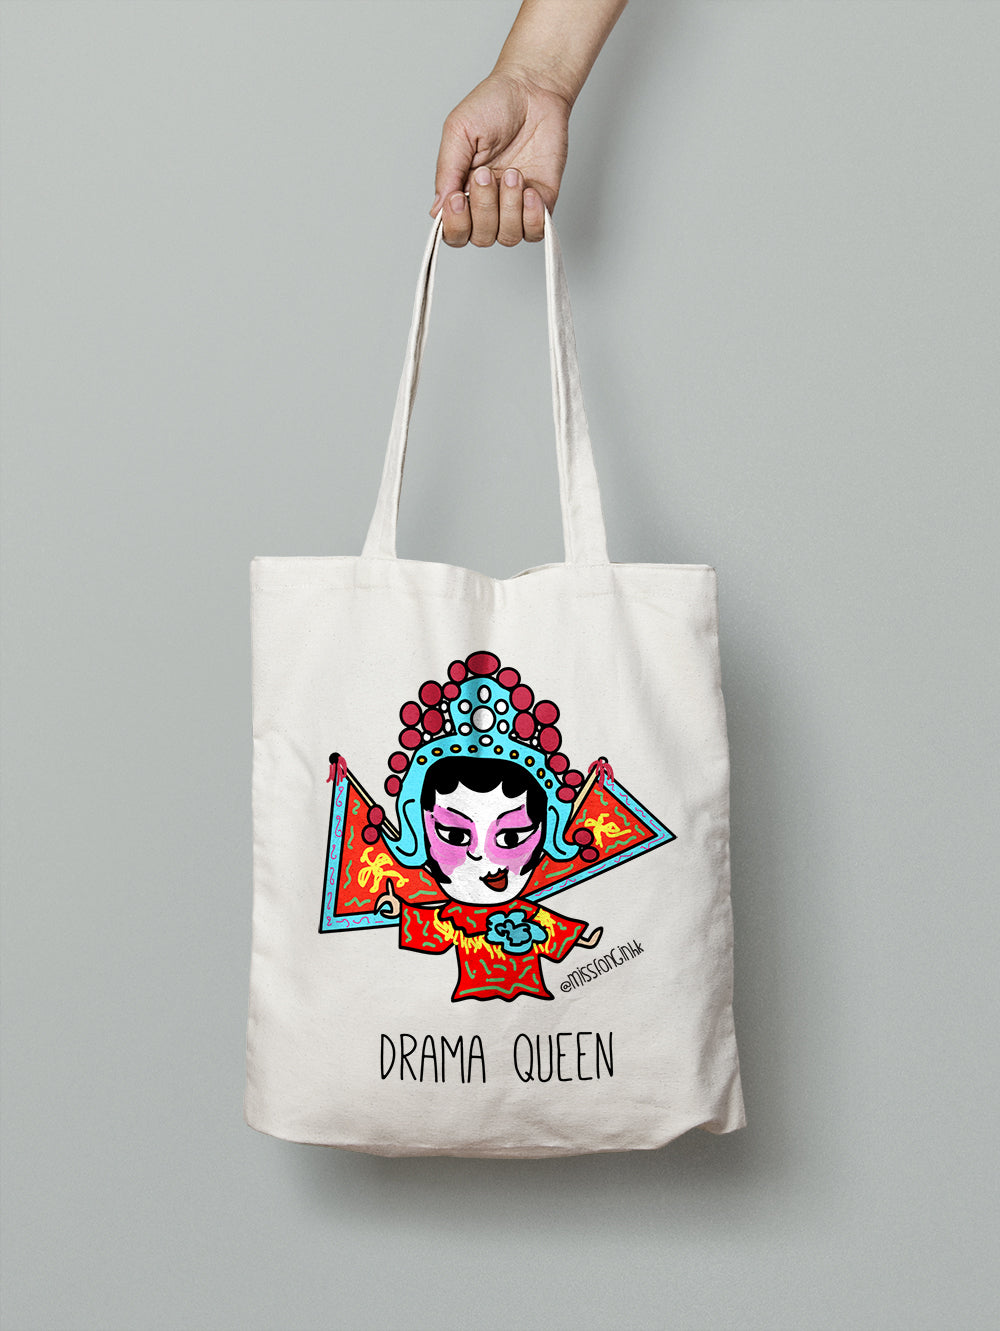 Miss Fong in Hong Kong: Cantonese Opera Drama Queen Cotton Canvas Tote Bag